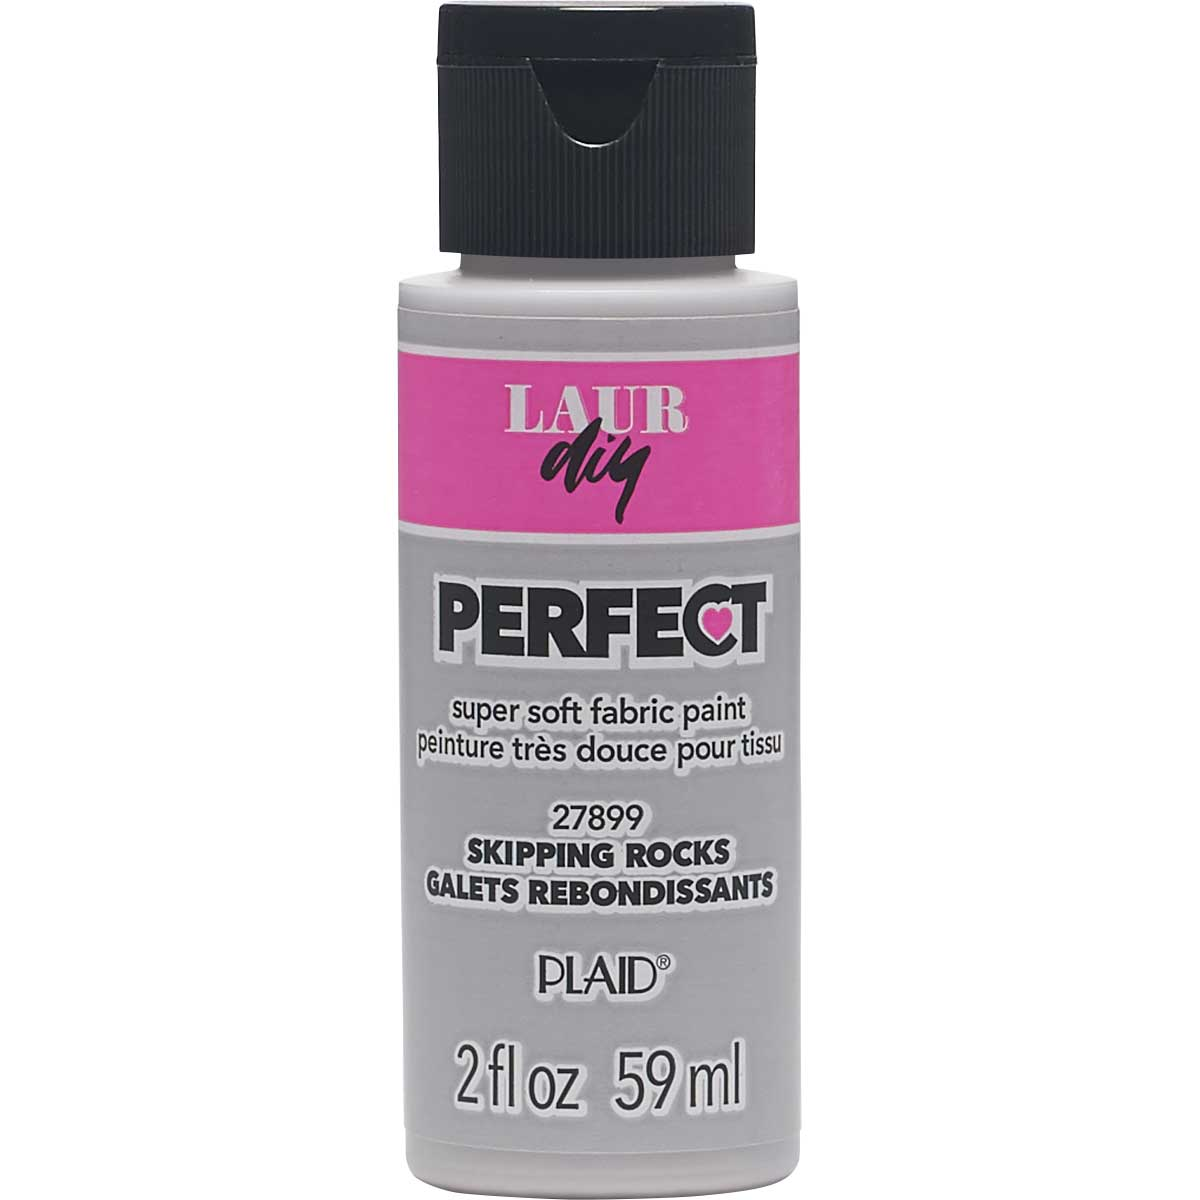 LaurDIY ® Perfect Fabric Paint - Skipping Rocks, 2 oz.